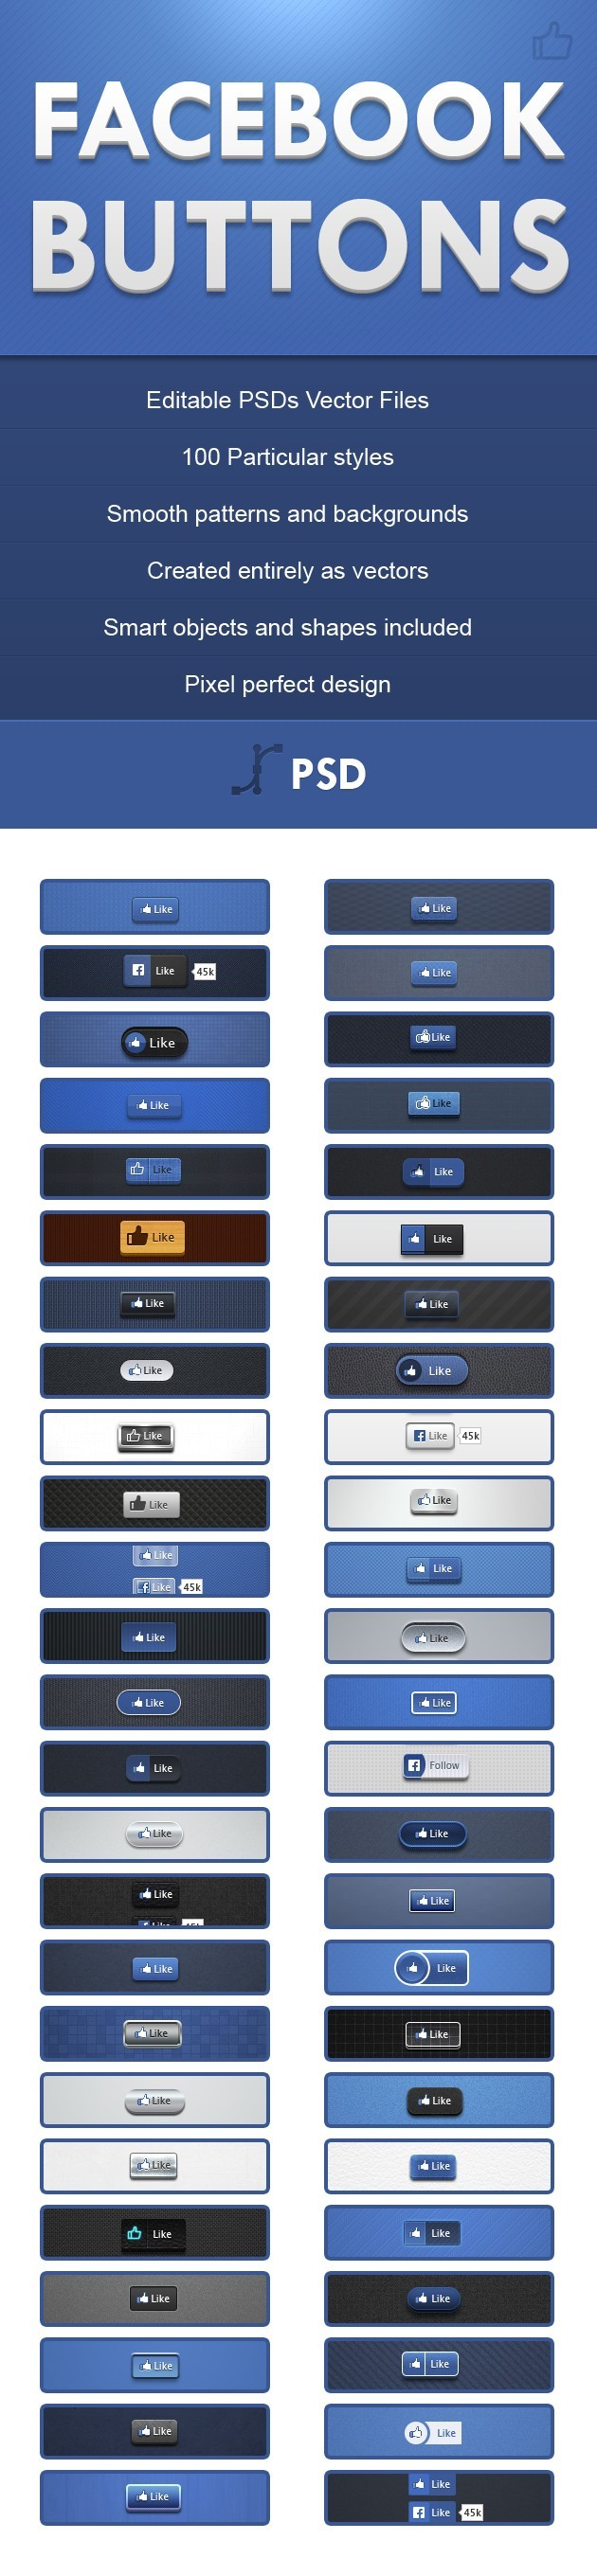 INTRO-Facebook-Buttons